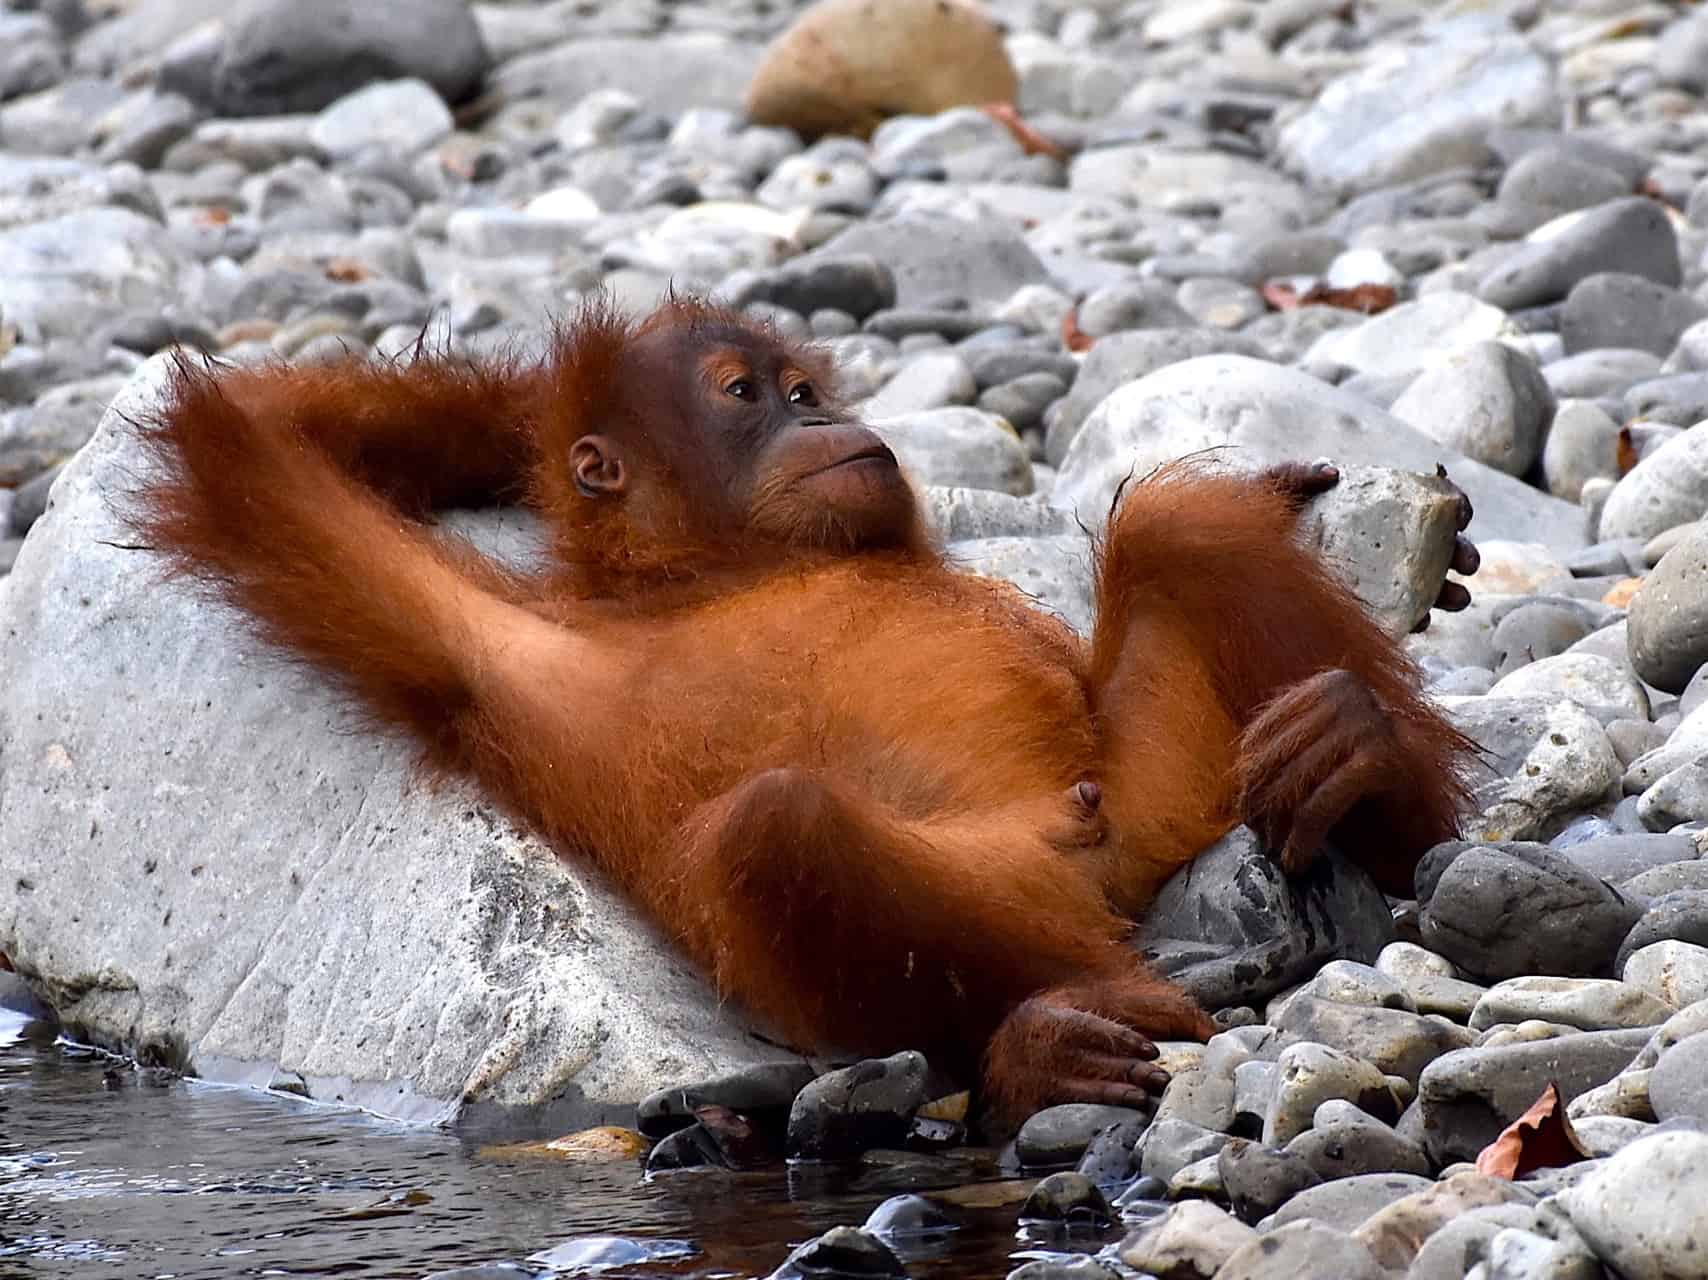 SUMATRAN ORANGUTAN BABY - JUNGLE BOOK - BUKIT LAWANG JUNGLE TREKKING BY SUMATRA ECOTRAVEL